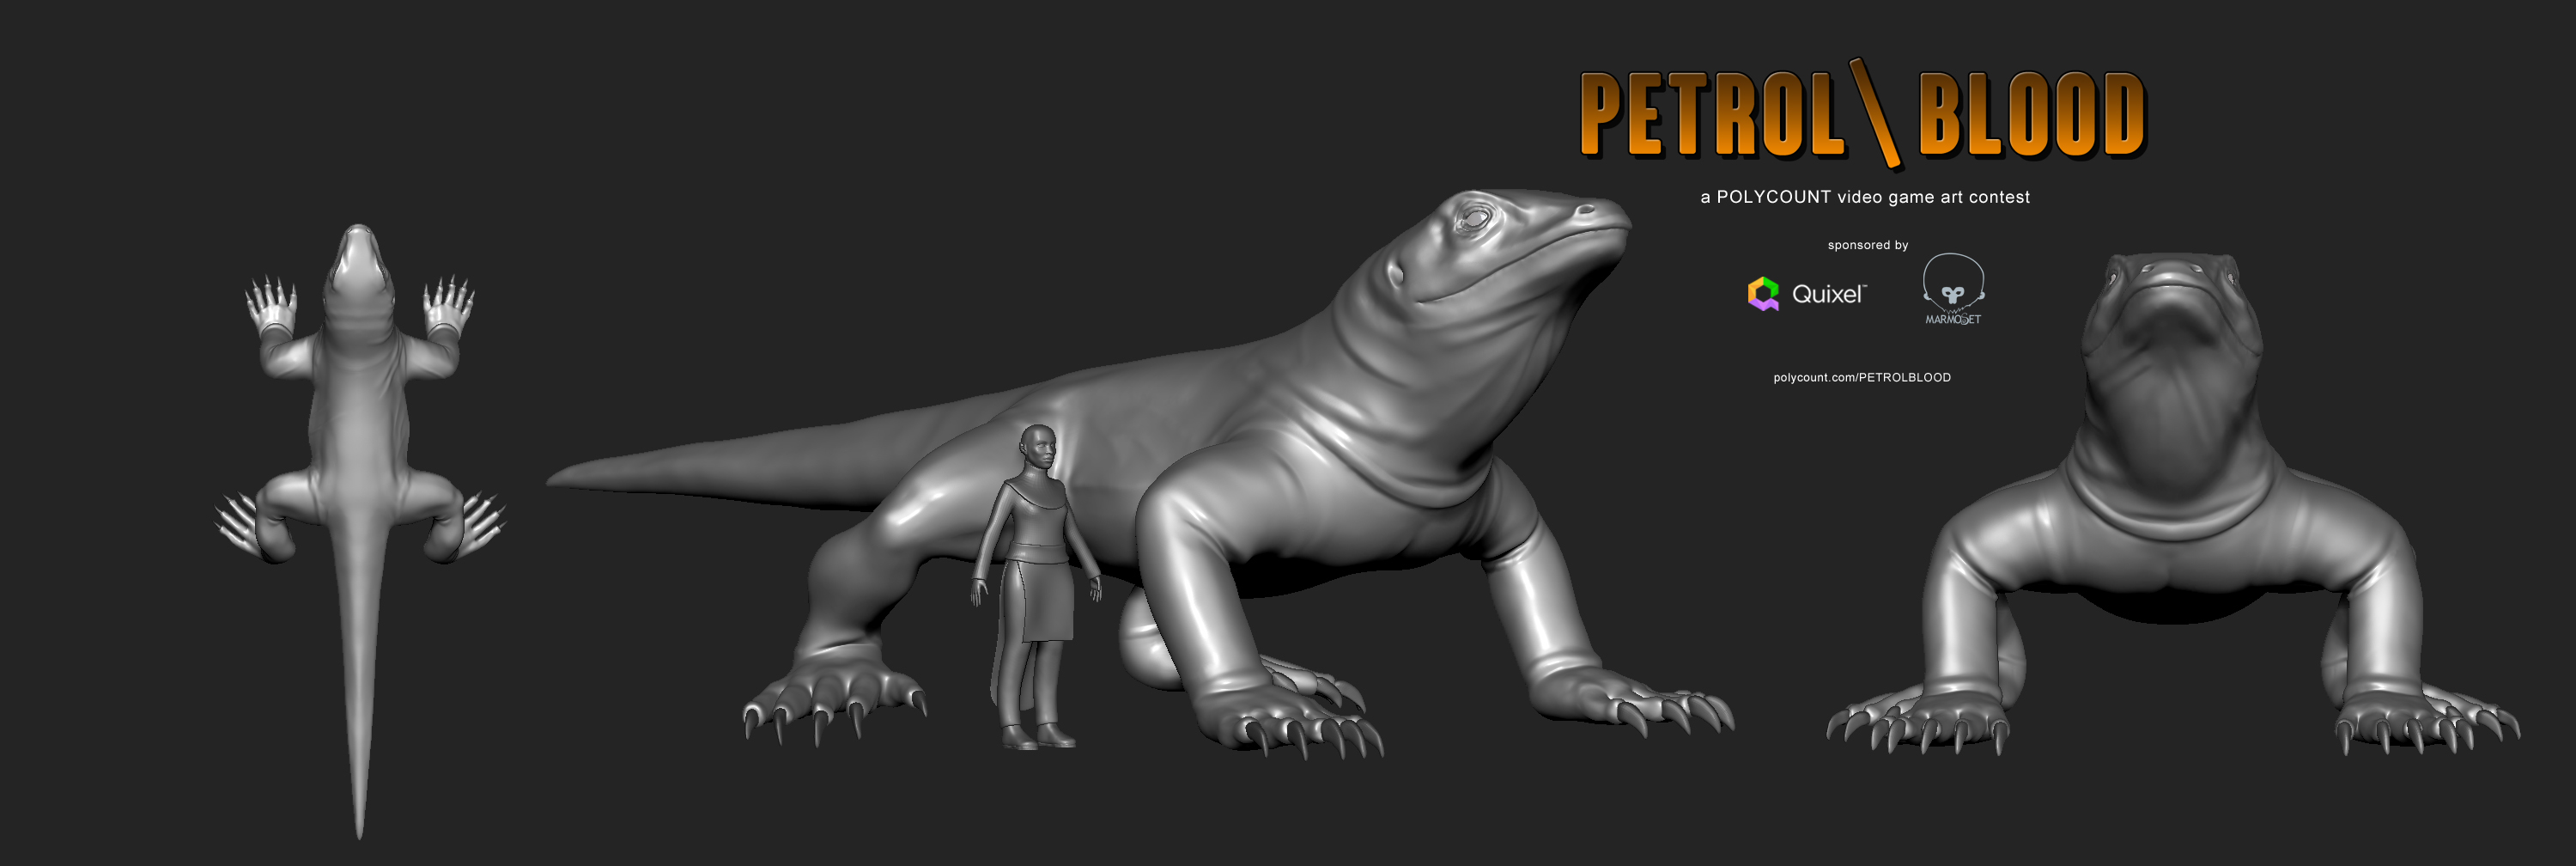 petro_blood_wip02_lizard_by_theartistictiger-d7qasca.jpg